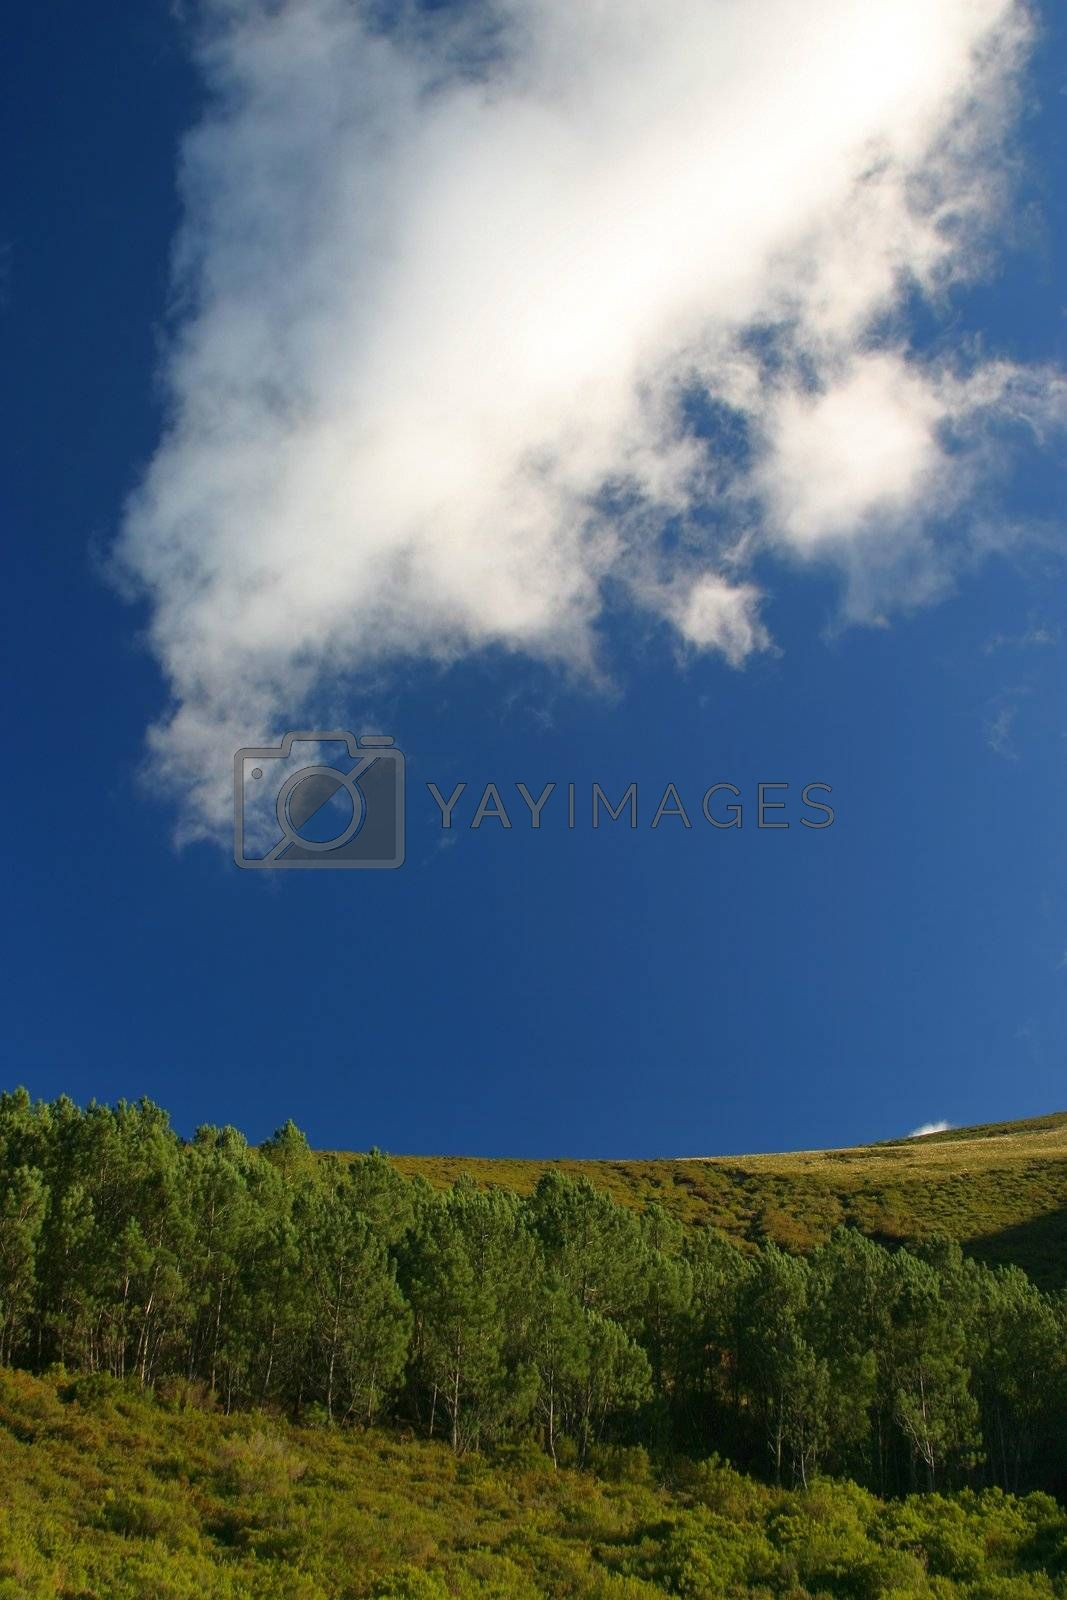 Woods on hill with blue sky and big white cloud